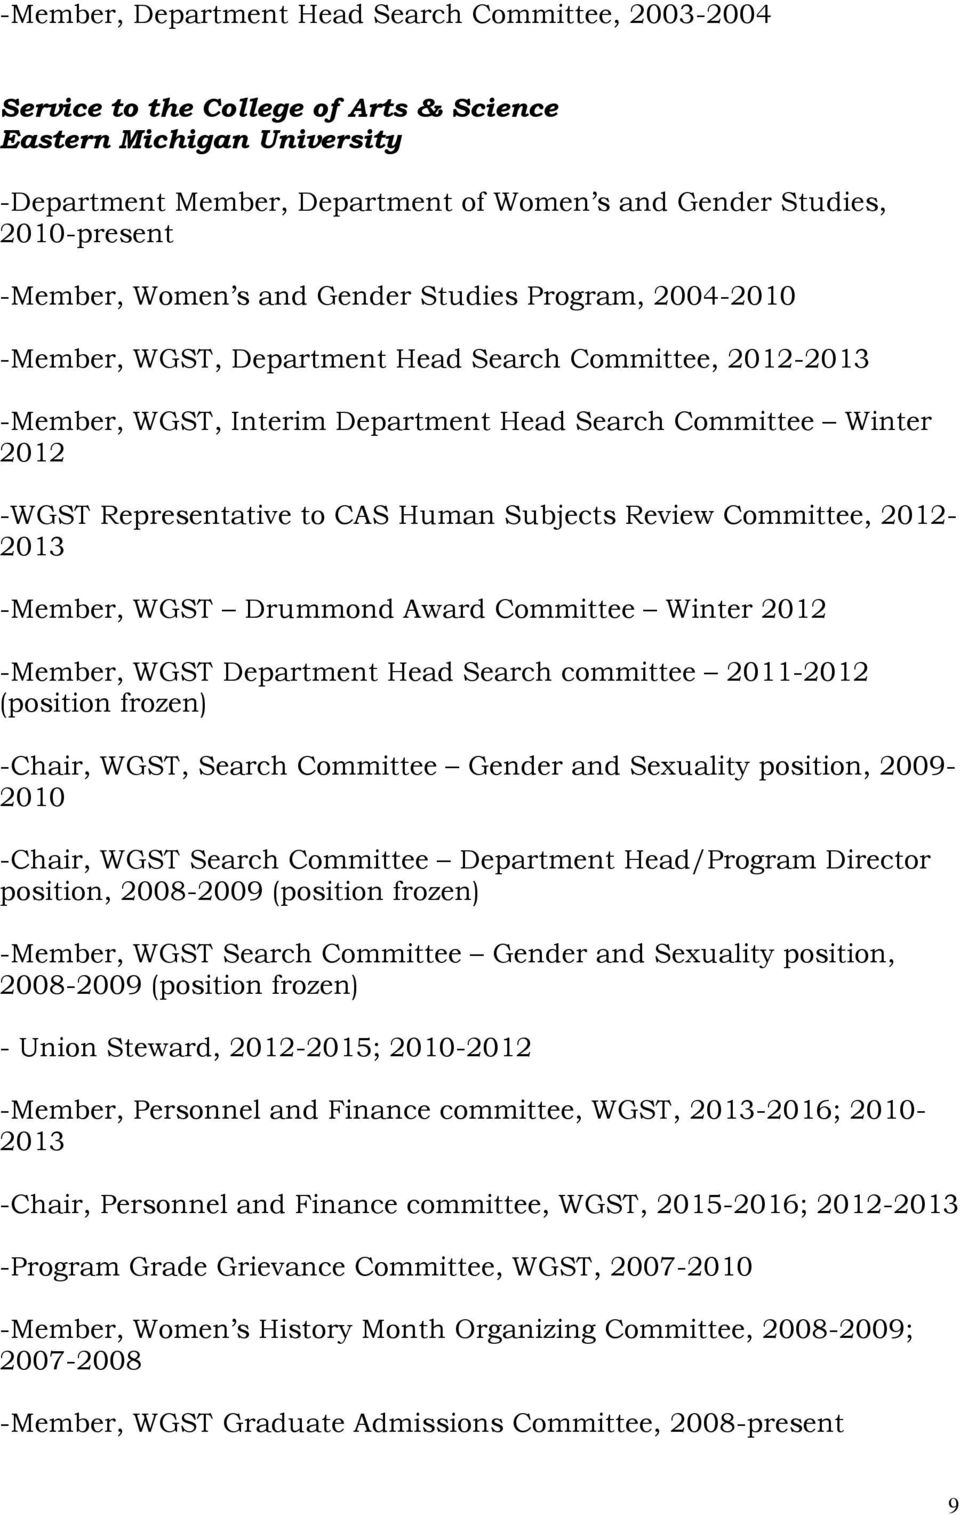 Review Committee, 2012-2013 -Member, WGST Drummond Award Committee Winter 2012 -Member, WGST Department Head Search committee 2011-2012 (position frozen) -Chair, WGST, Search Committee Gender and